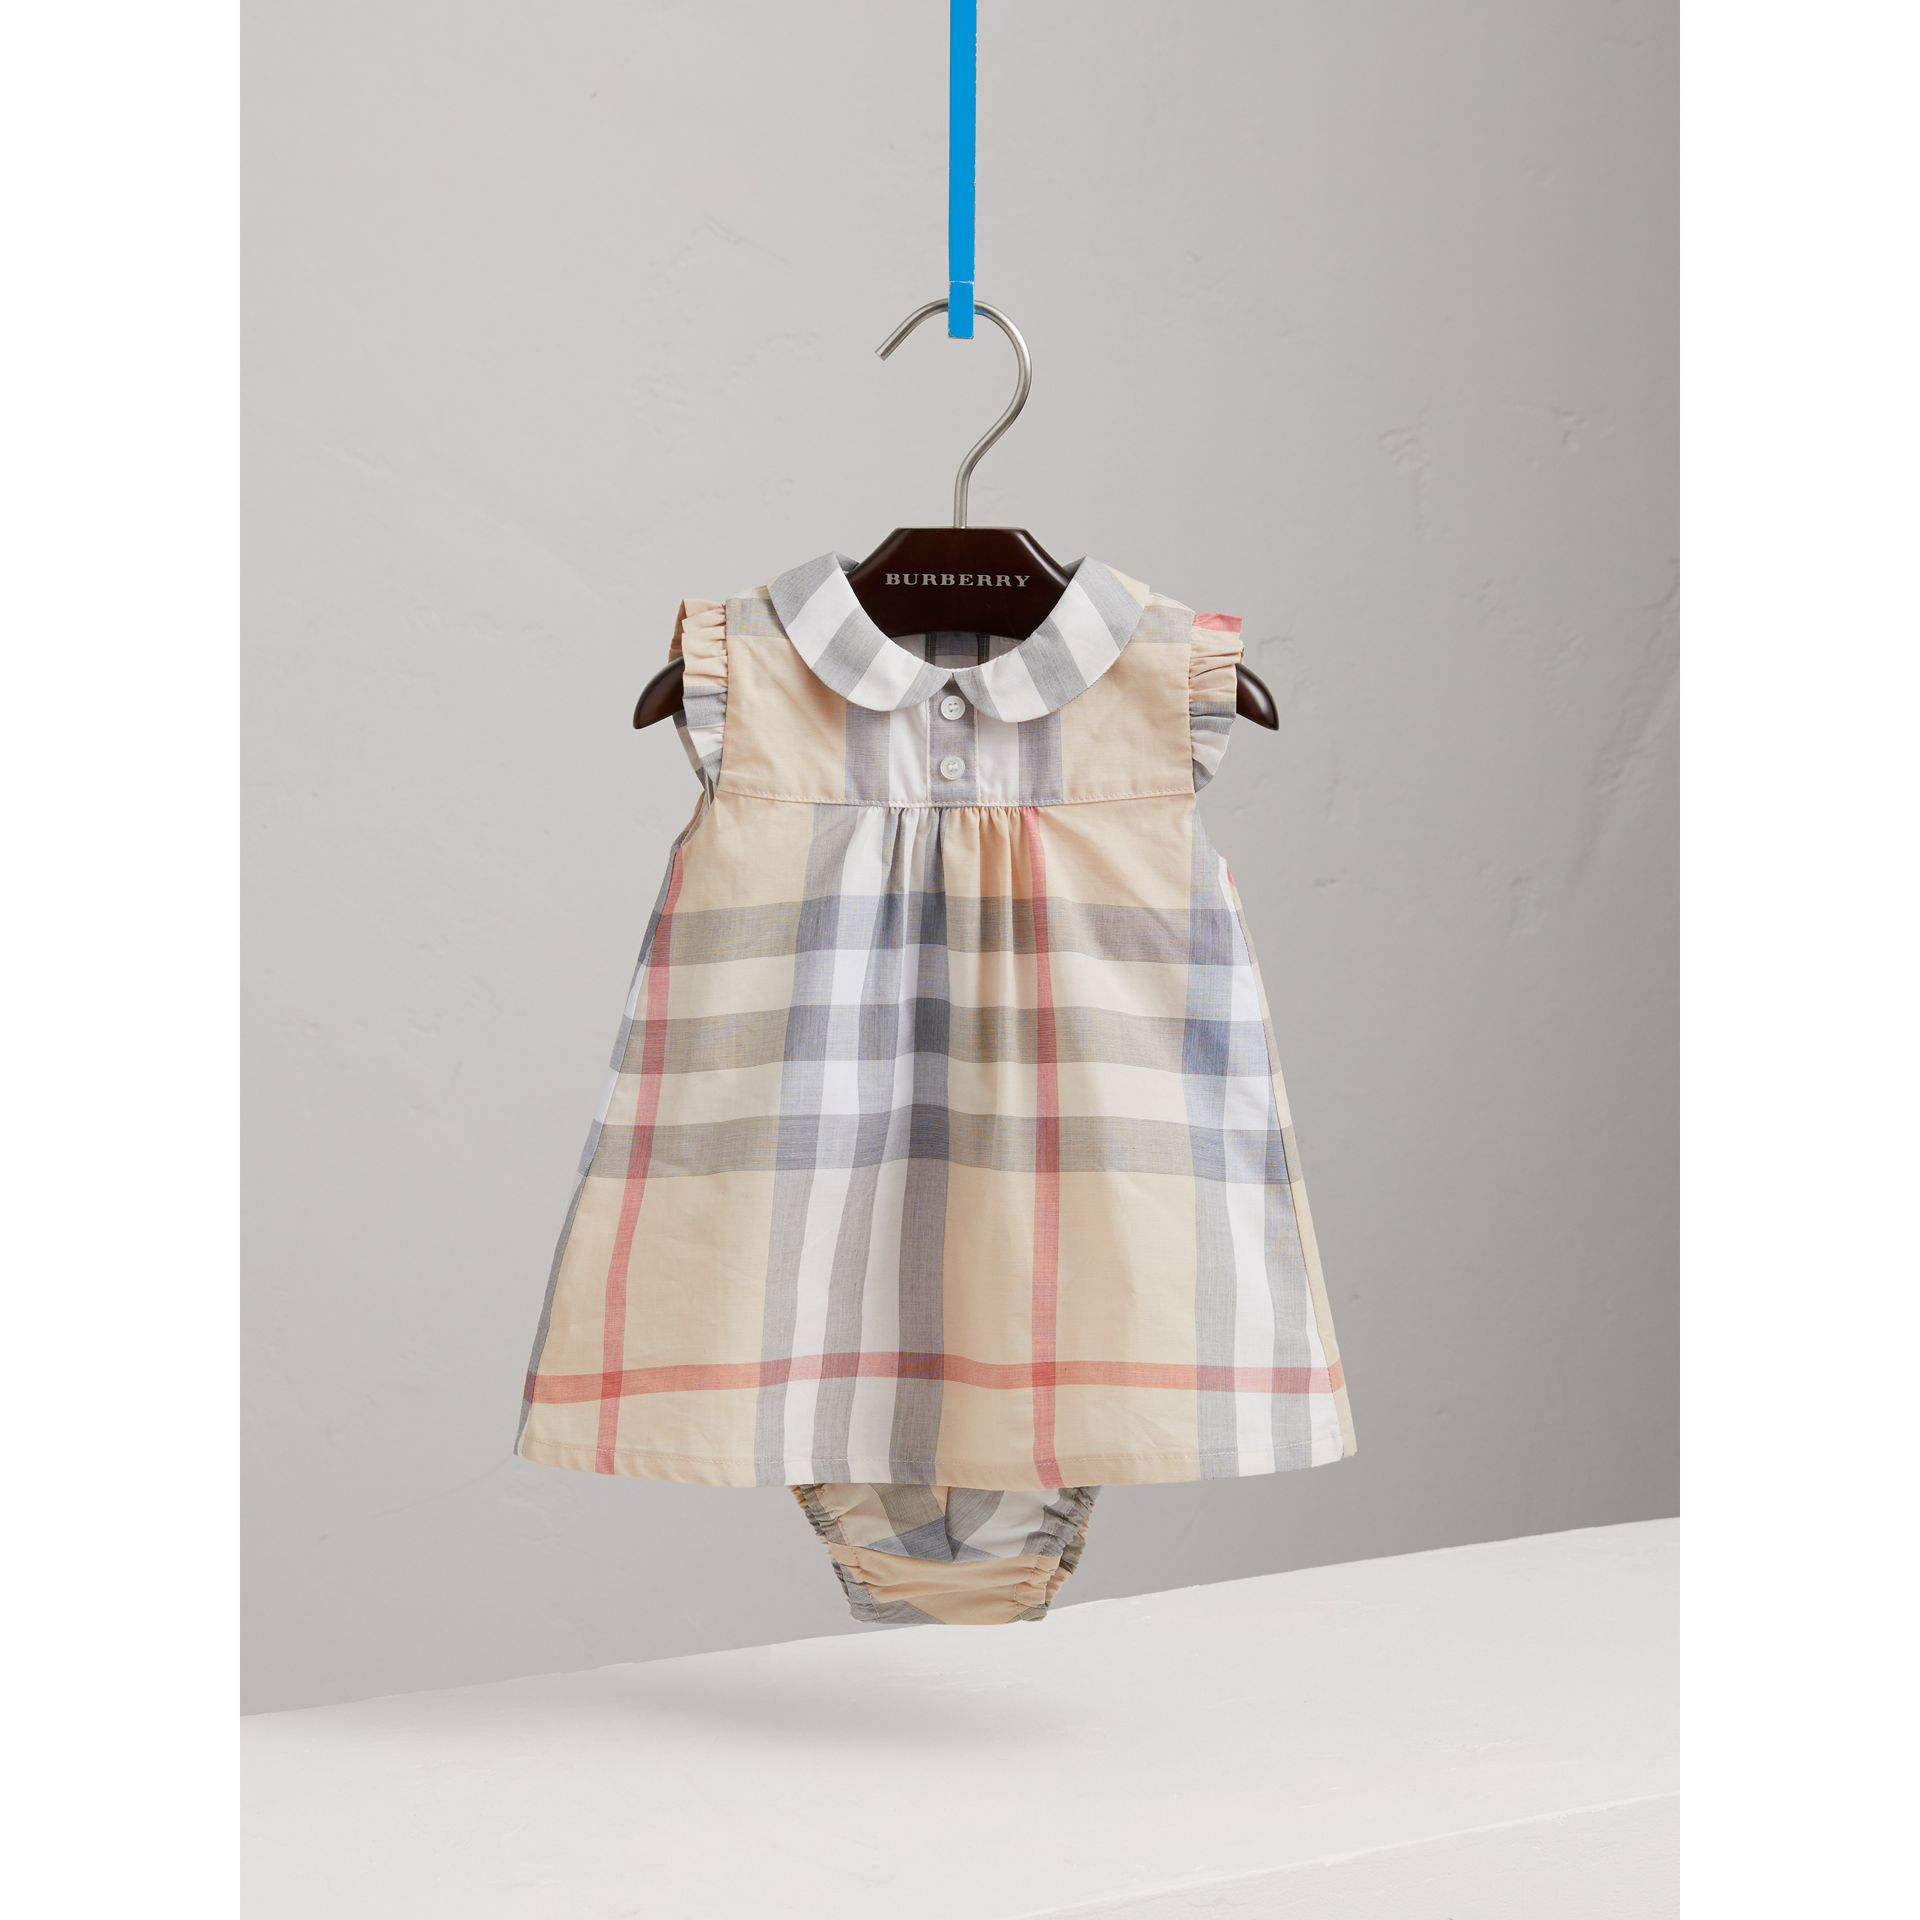 Robe en coton en check délavé (Classic  Pâle) - Fille | Burberry - photo de la galerie 3